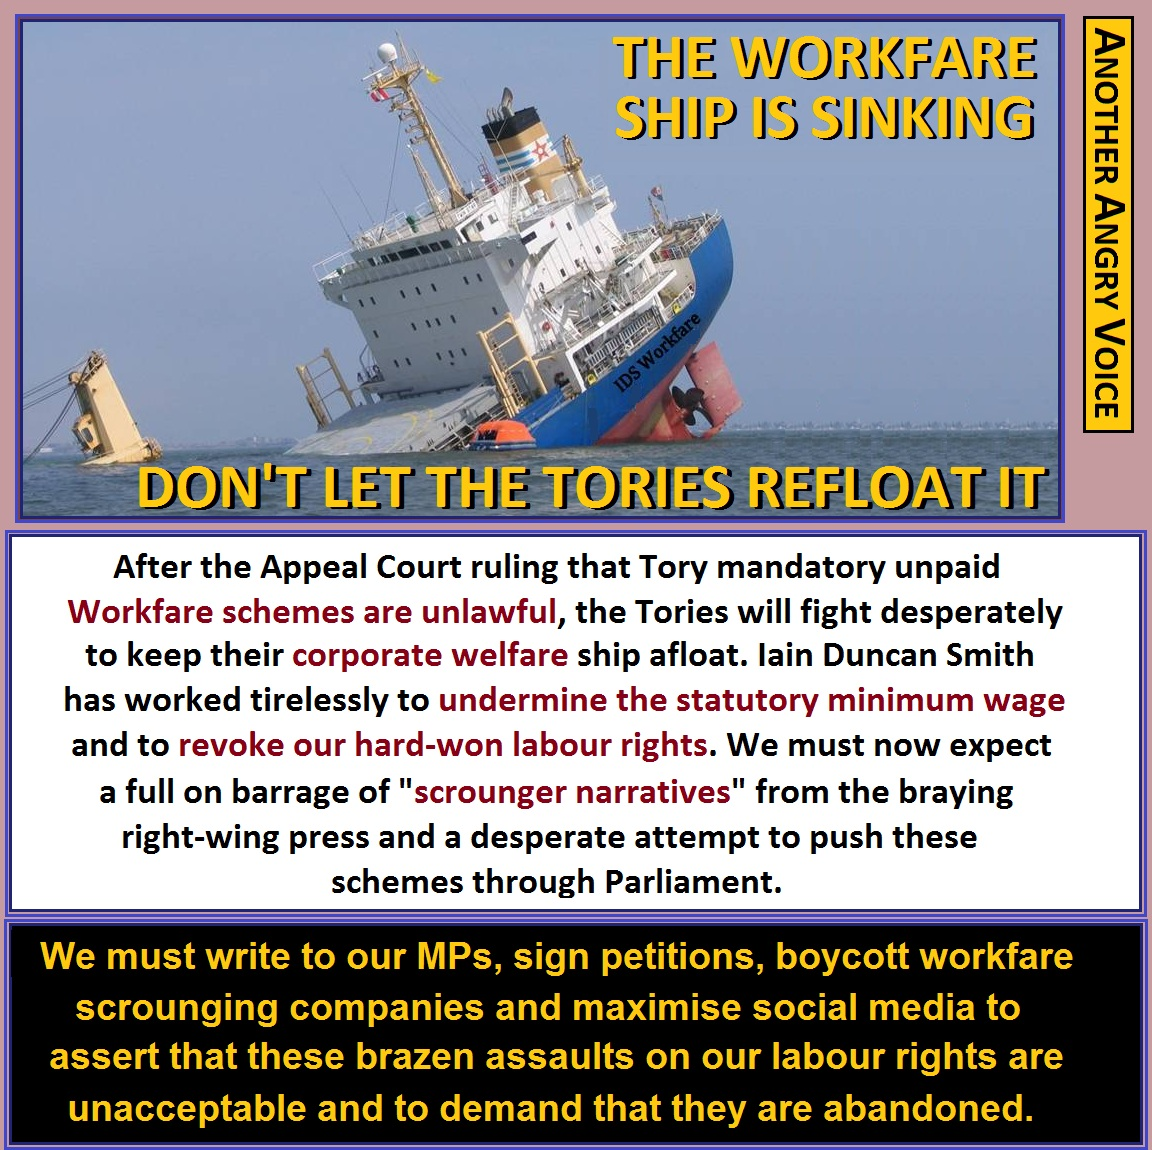 Aav The Workfare Ship Is Sinking